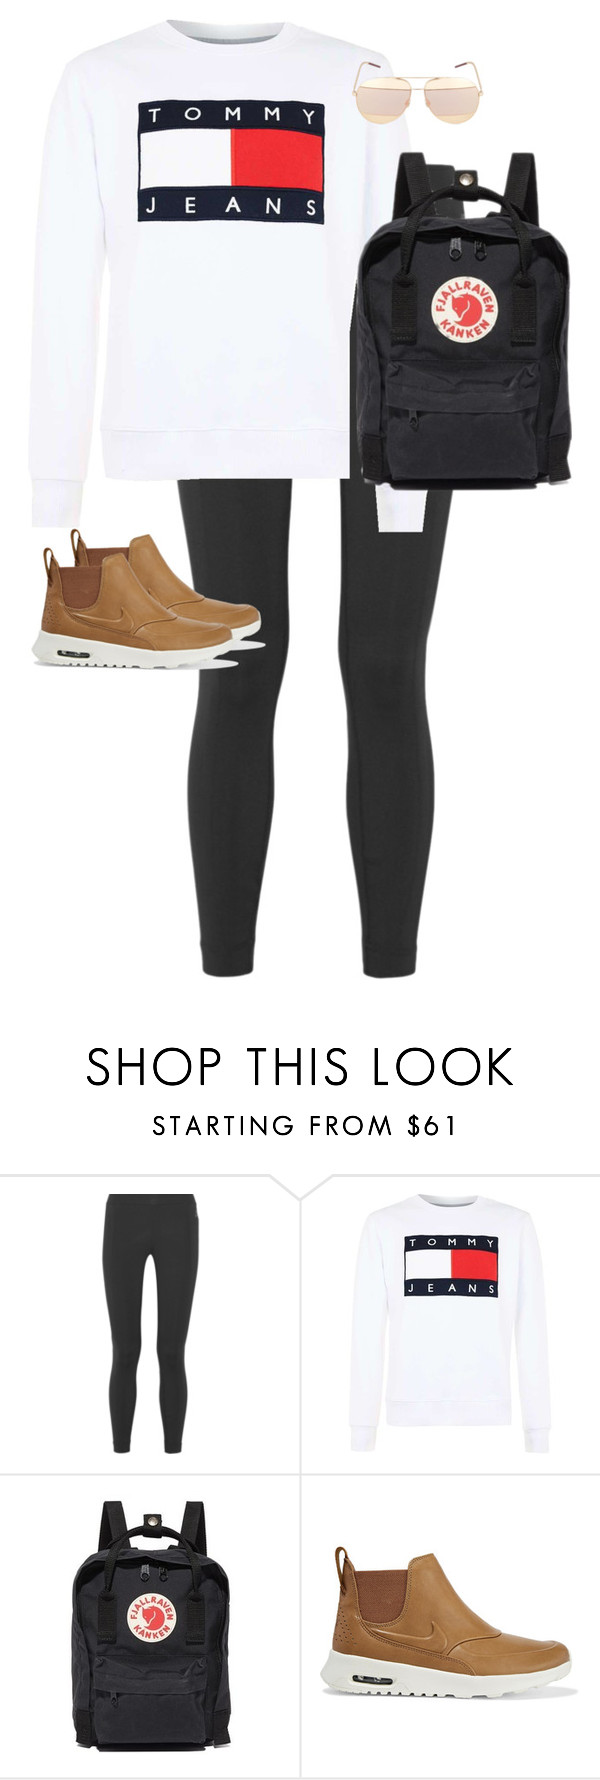 """Untitled #13013"" by alexsrogers ❤ liked on Polyvore featuring NIKE, Topman, Fjällräven and Christian Dior"